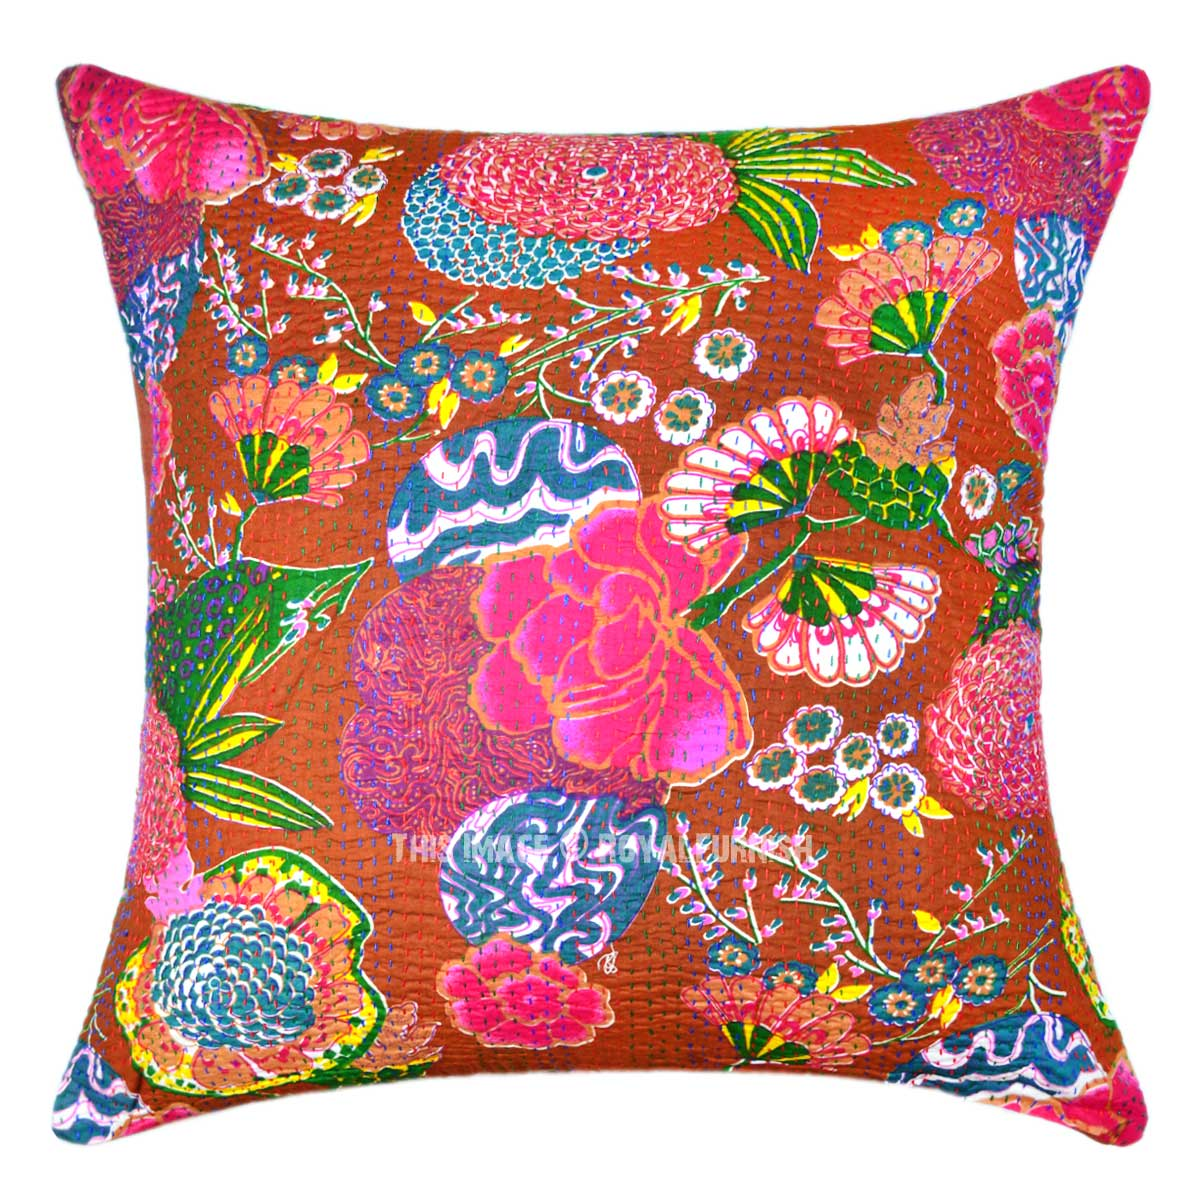 Decorative Pillows Tropical : Brown Multi Tropical Flower Featuring Outdoor Decorative Pillow Cover 24X24 - RoyalFurnish.com